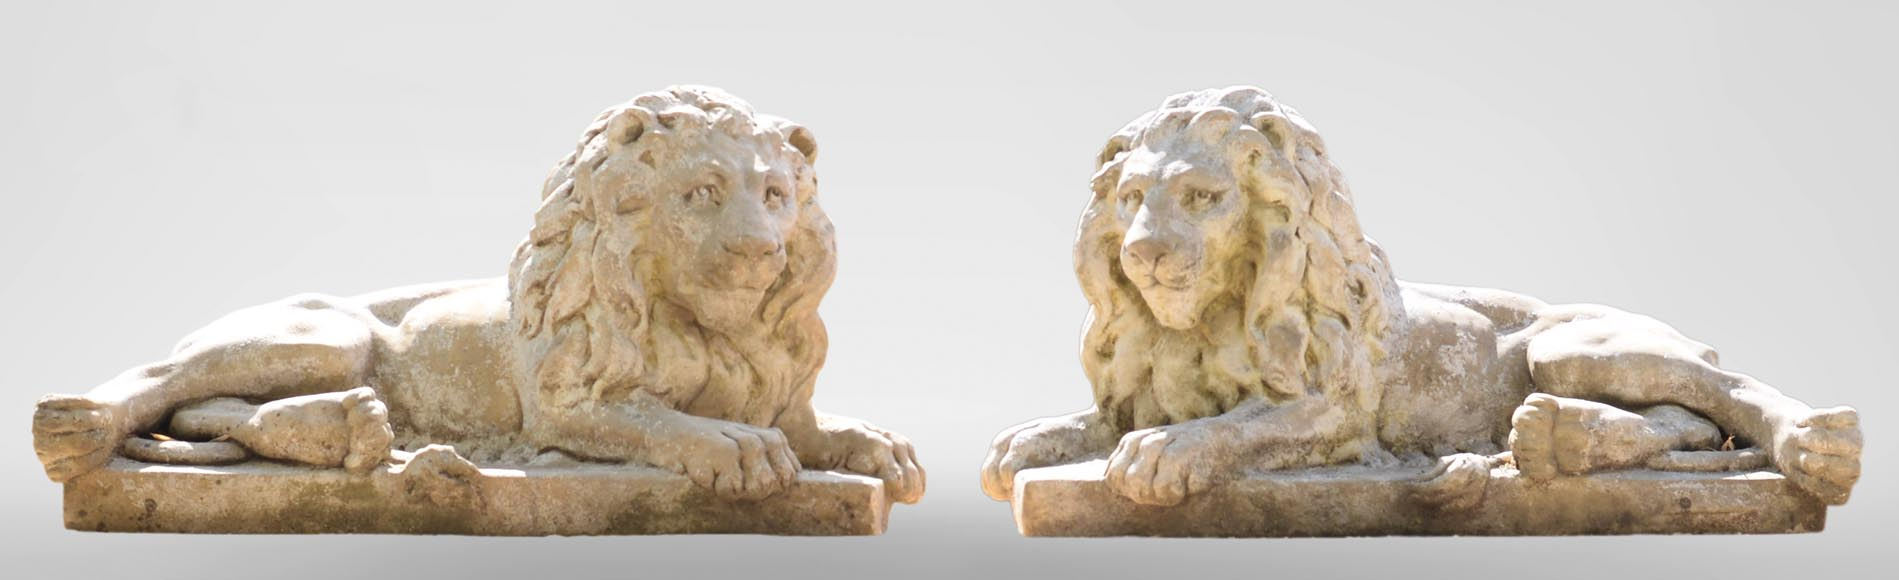 Important pair of statues with majestic lions made of composit stone - Reference 11191